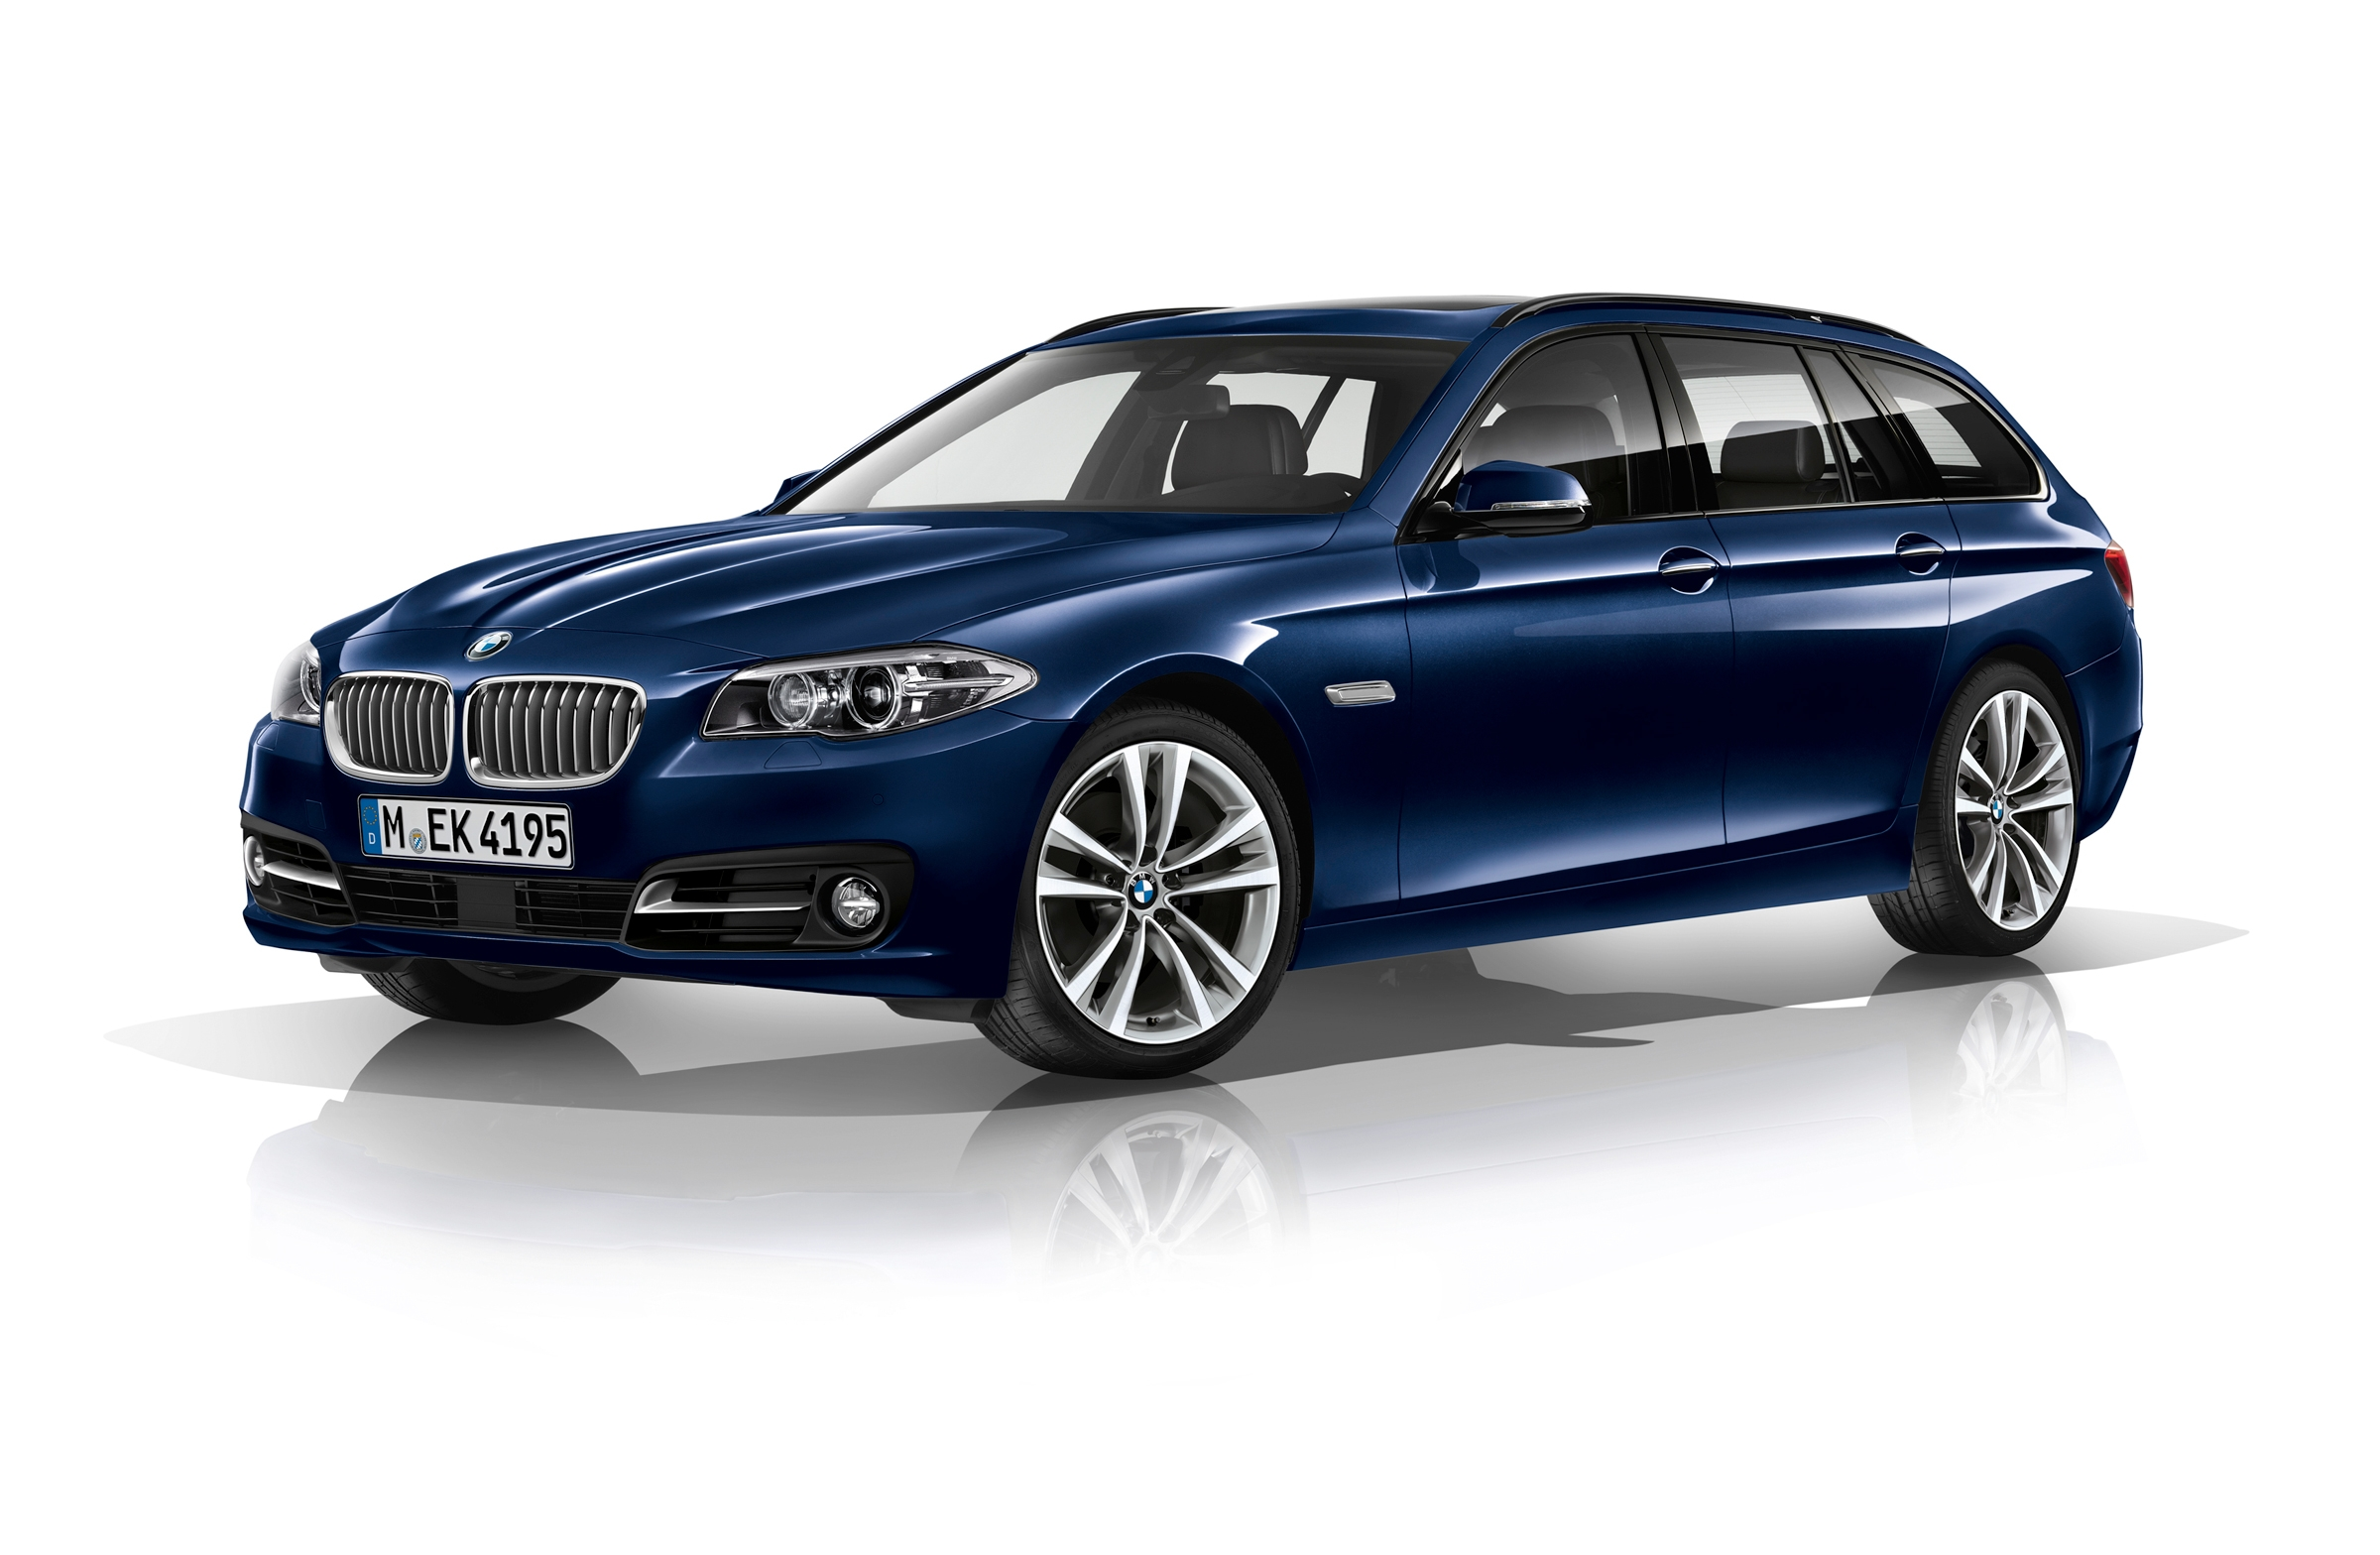 Bmw 316i 2015 Review Amazing Pictures And Images Look